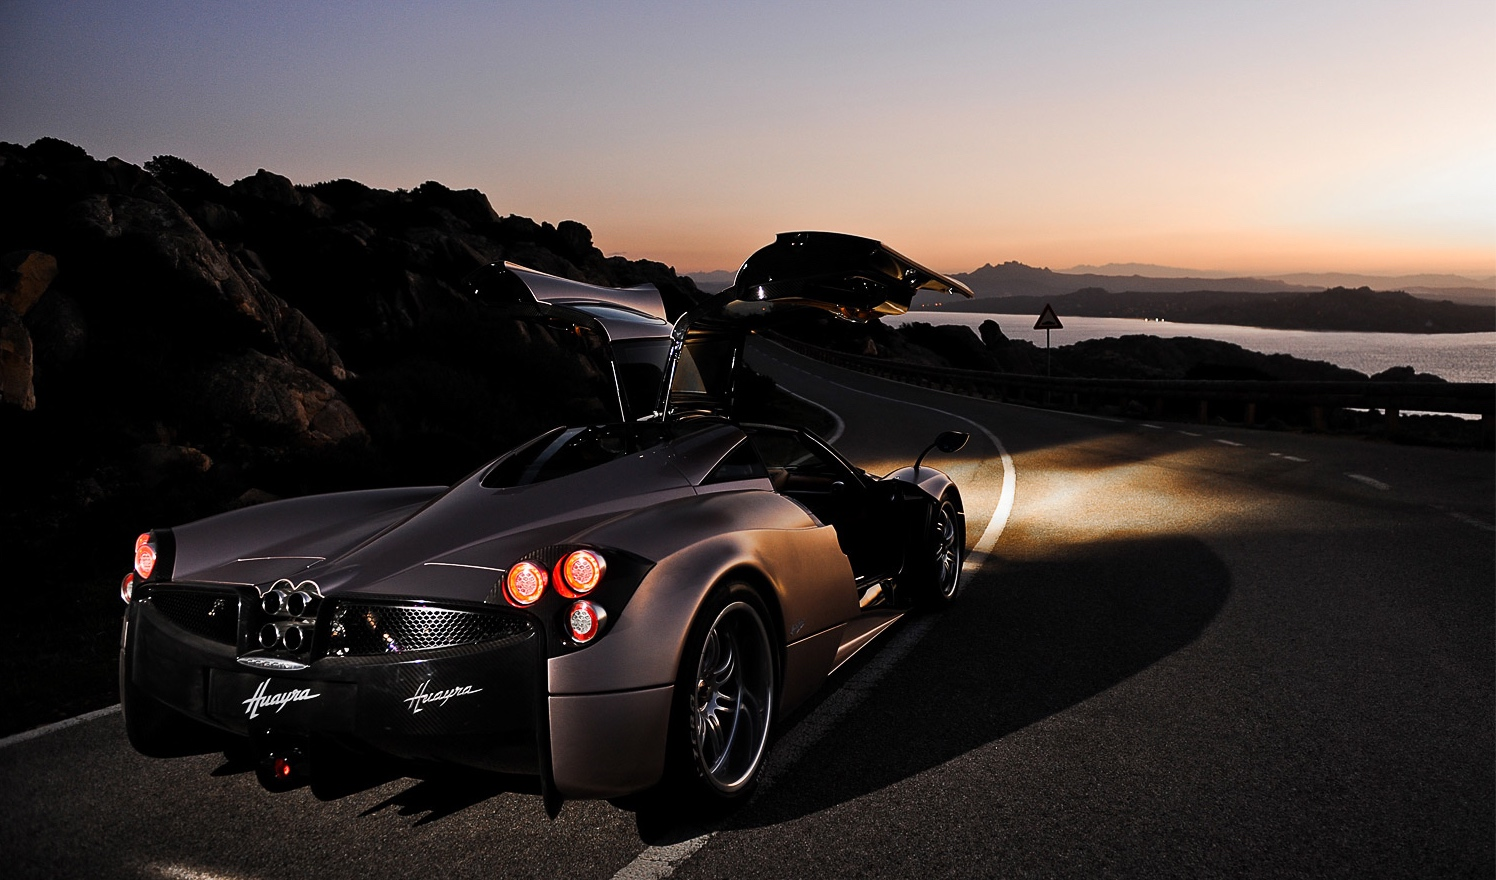 http://digitalsynopsis.com/wp-content/uploads/2014/06/supercar-wallpapers-pagani-4.jpg